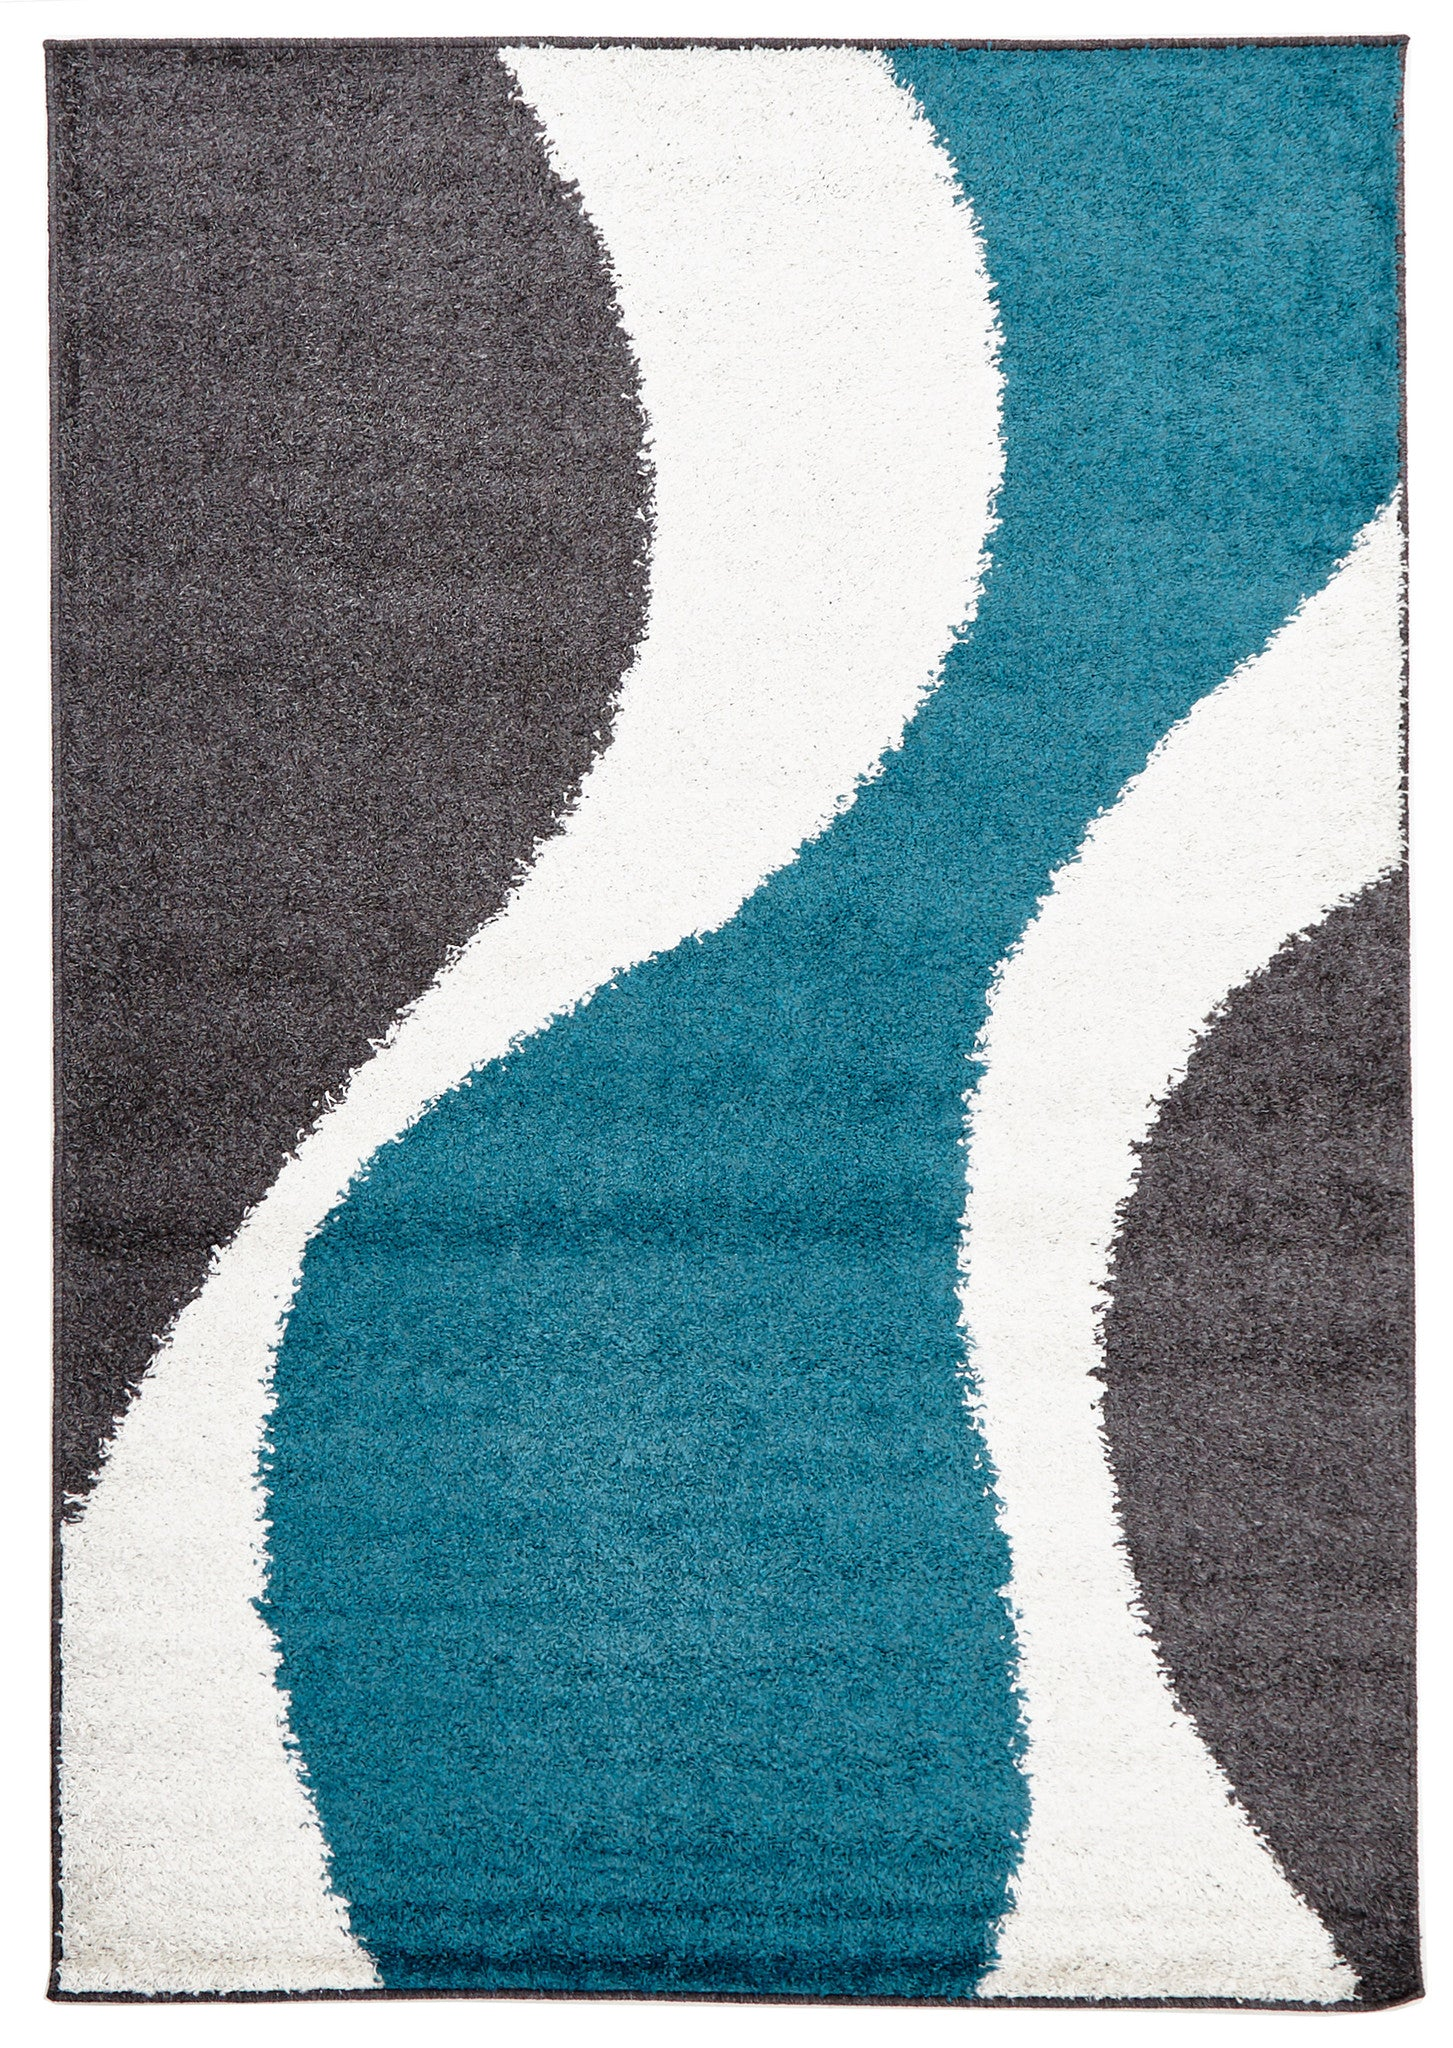 Viva 809 Shaggy Rug - Blue Charcoal White